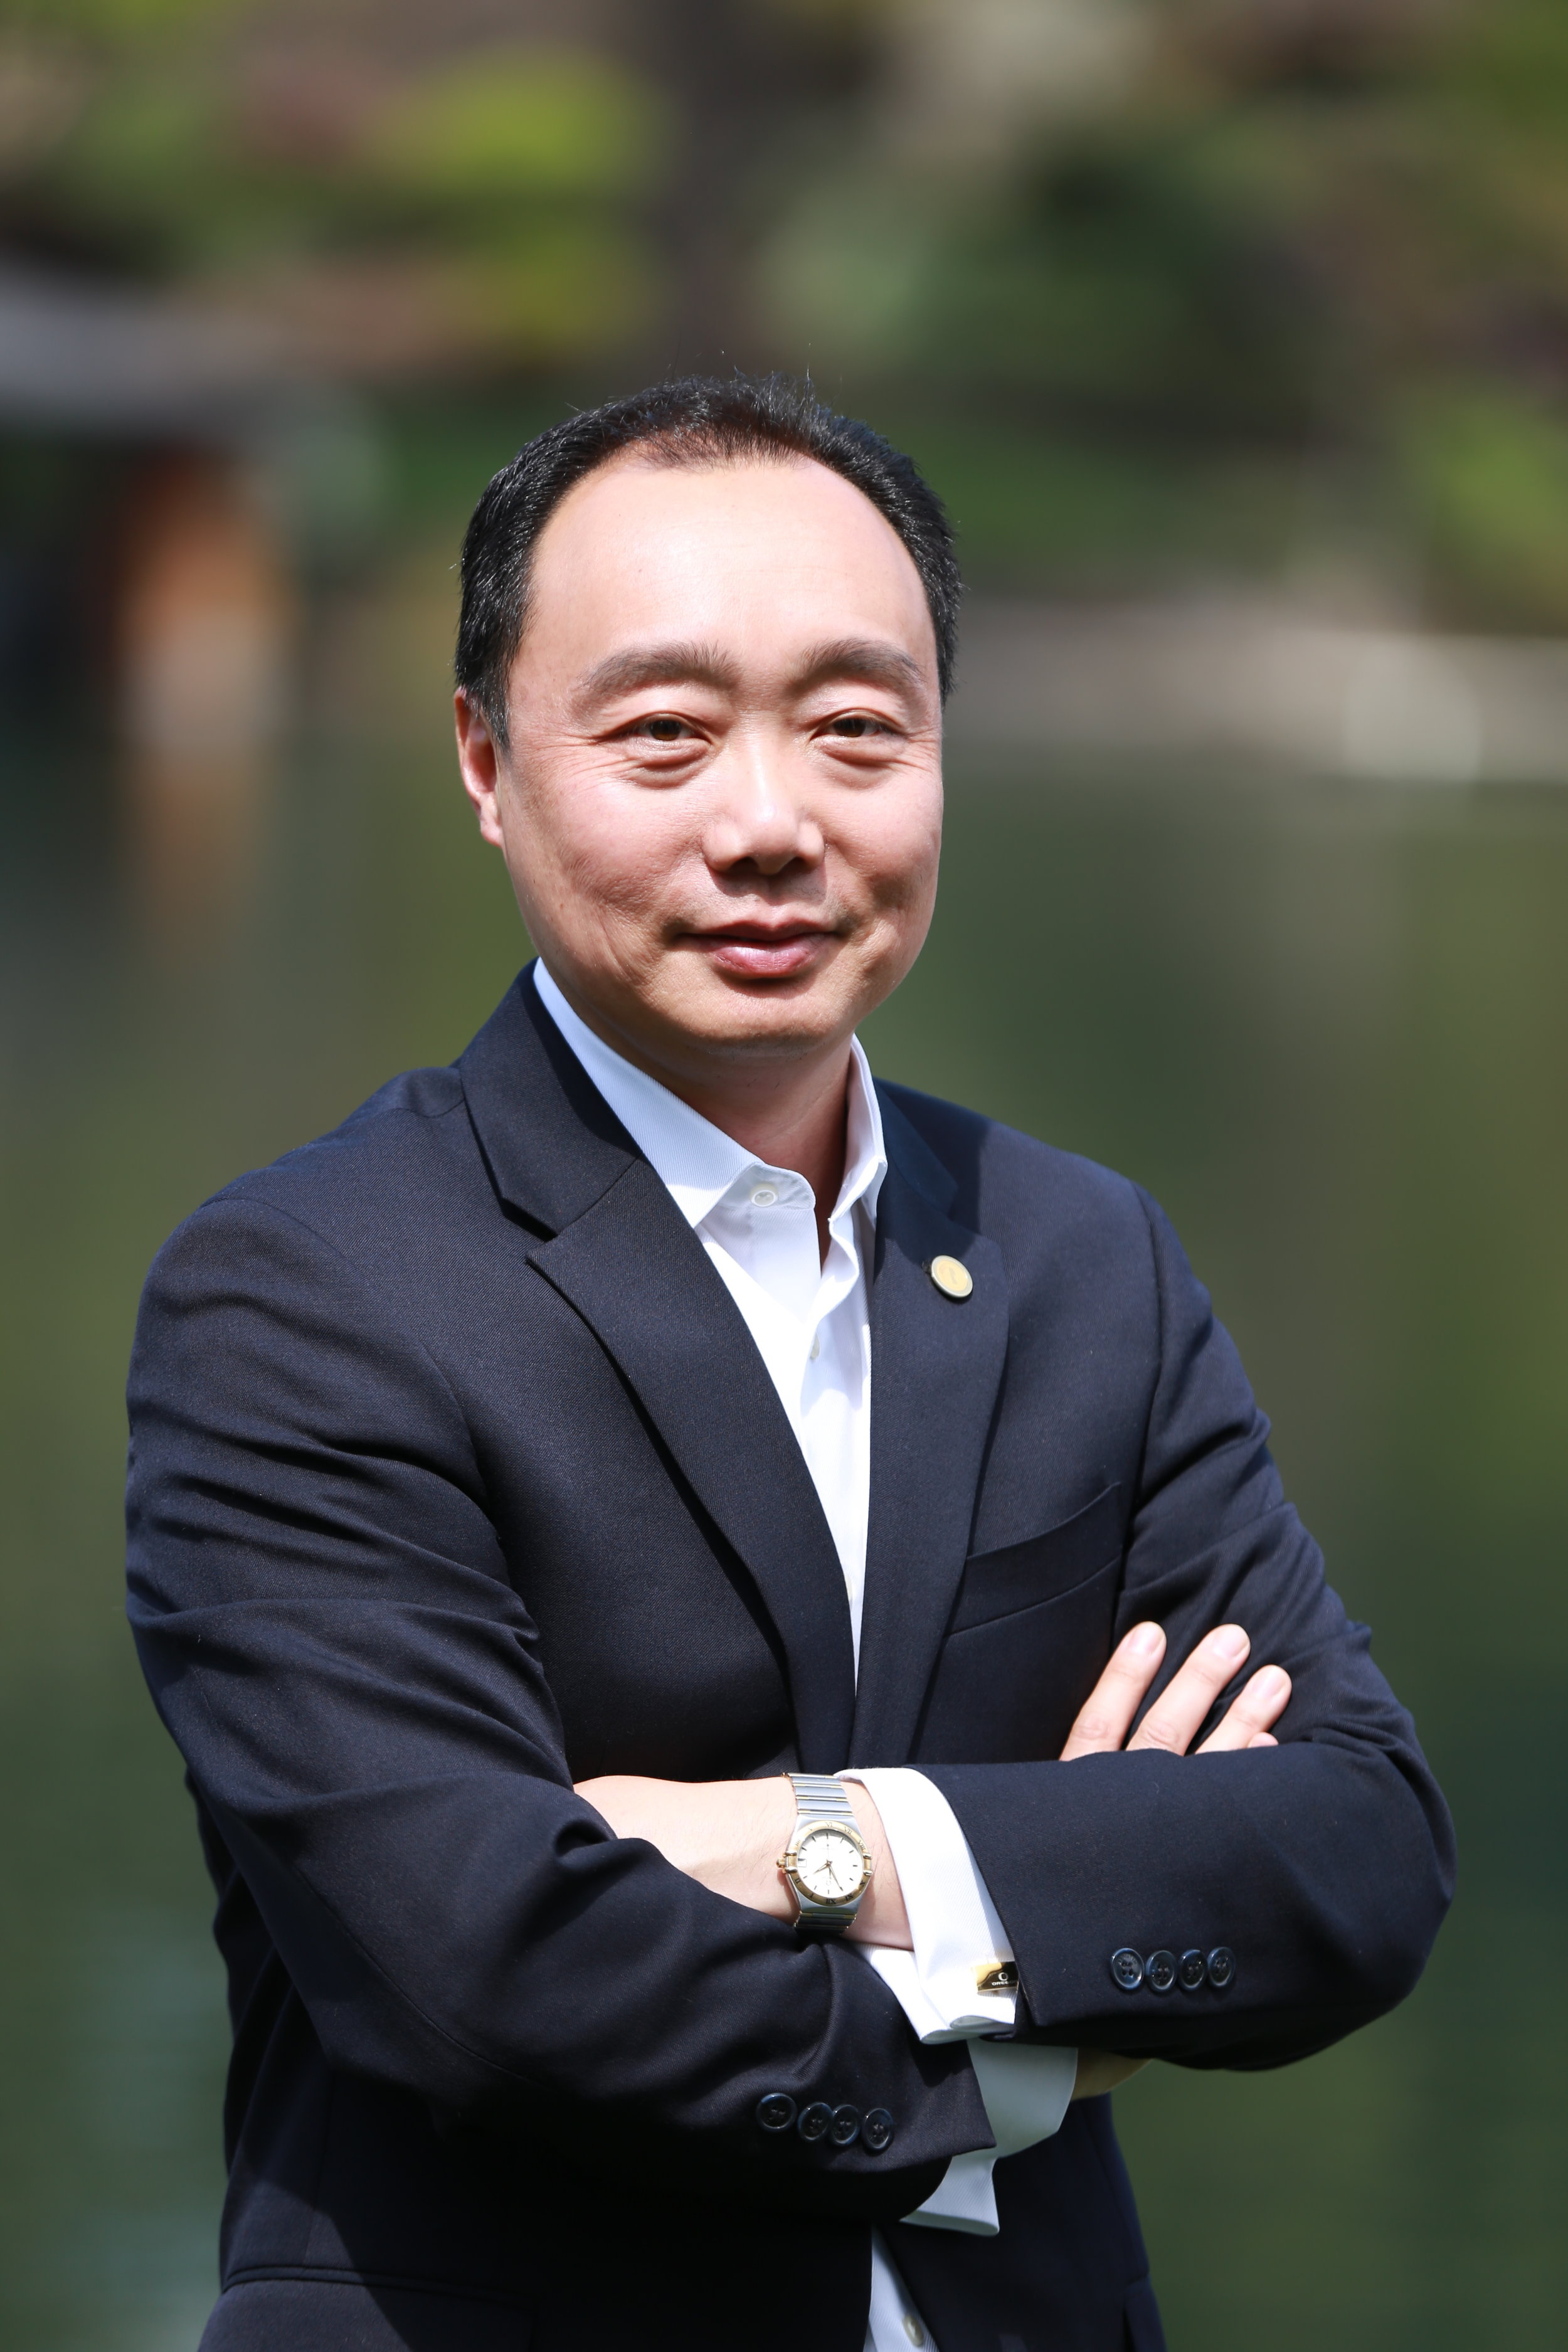 Top Producer        波特兰地区最佳 经纪之一 - Top Producer, Cascade Sotheby's Asia Desk Vice President Michael Zhang has developed a global reputation as the top luxury/Investment real estate agent for Lake Oswego and Portland area. Integrity, Loyalty, Professionalism and informative have help Michael win many international , out of state buyer and local client's trust. Highest level - DiamondPlatinum Member of Portland Metropolitan Association of Realtors®.